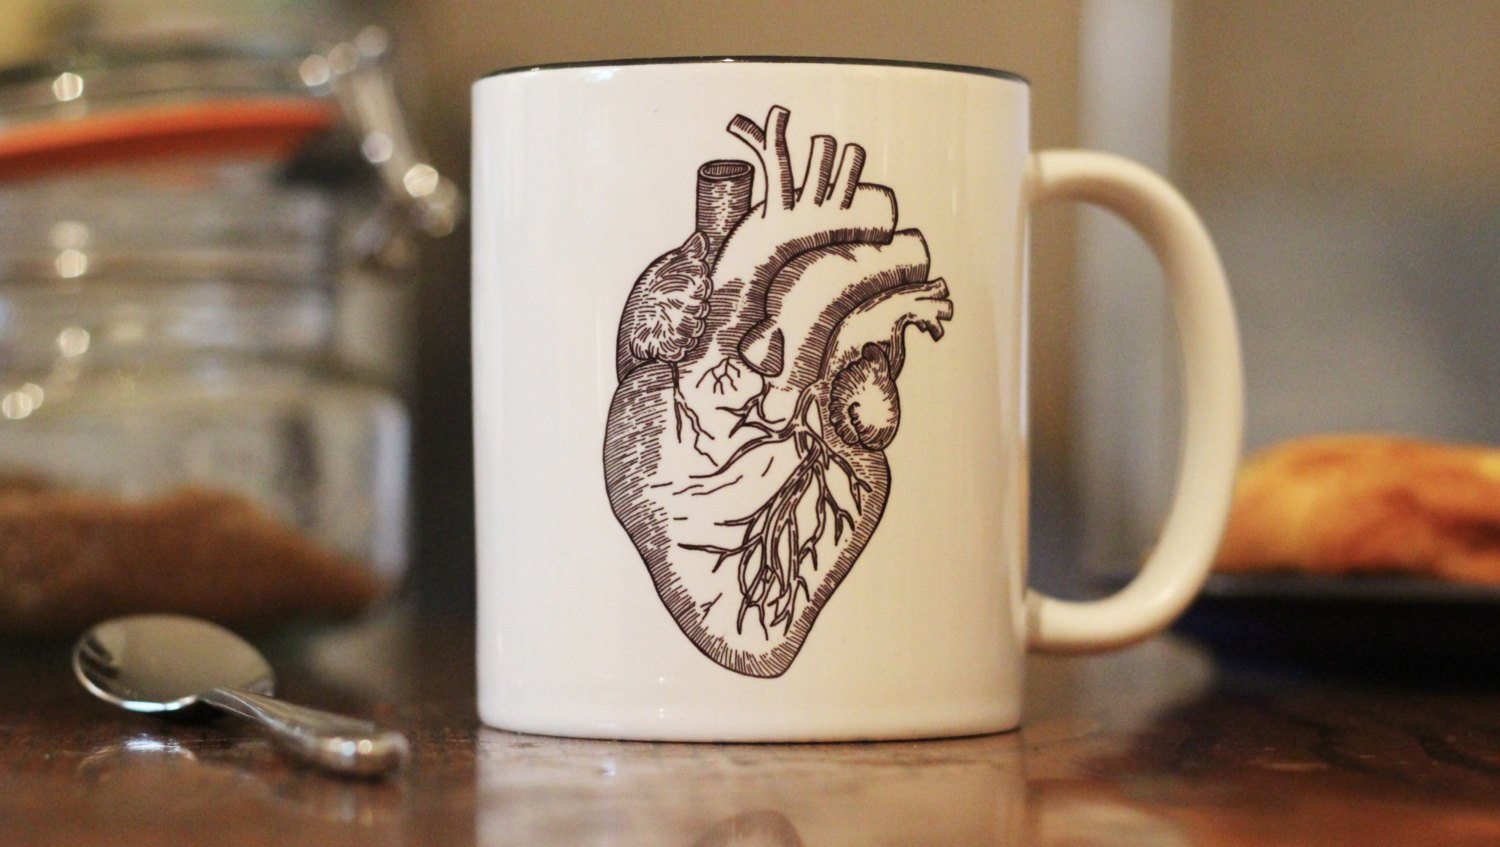 Anatomical Ribcage - Illustration - 10oz Cup - ByCandlelight27